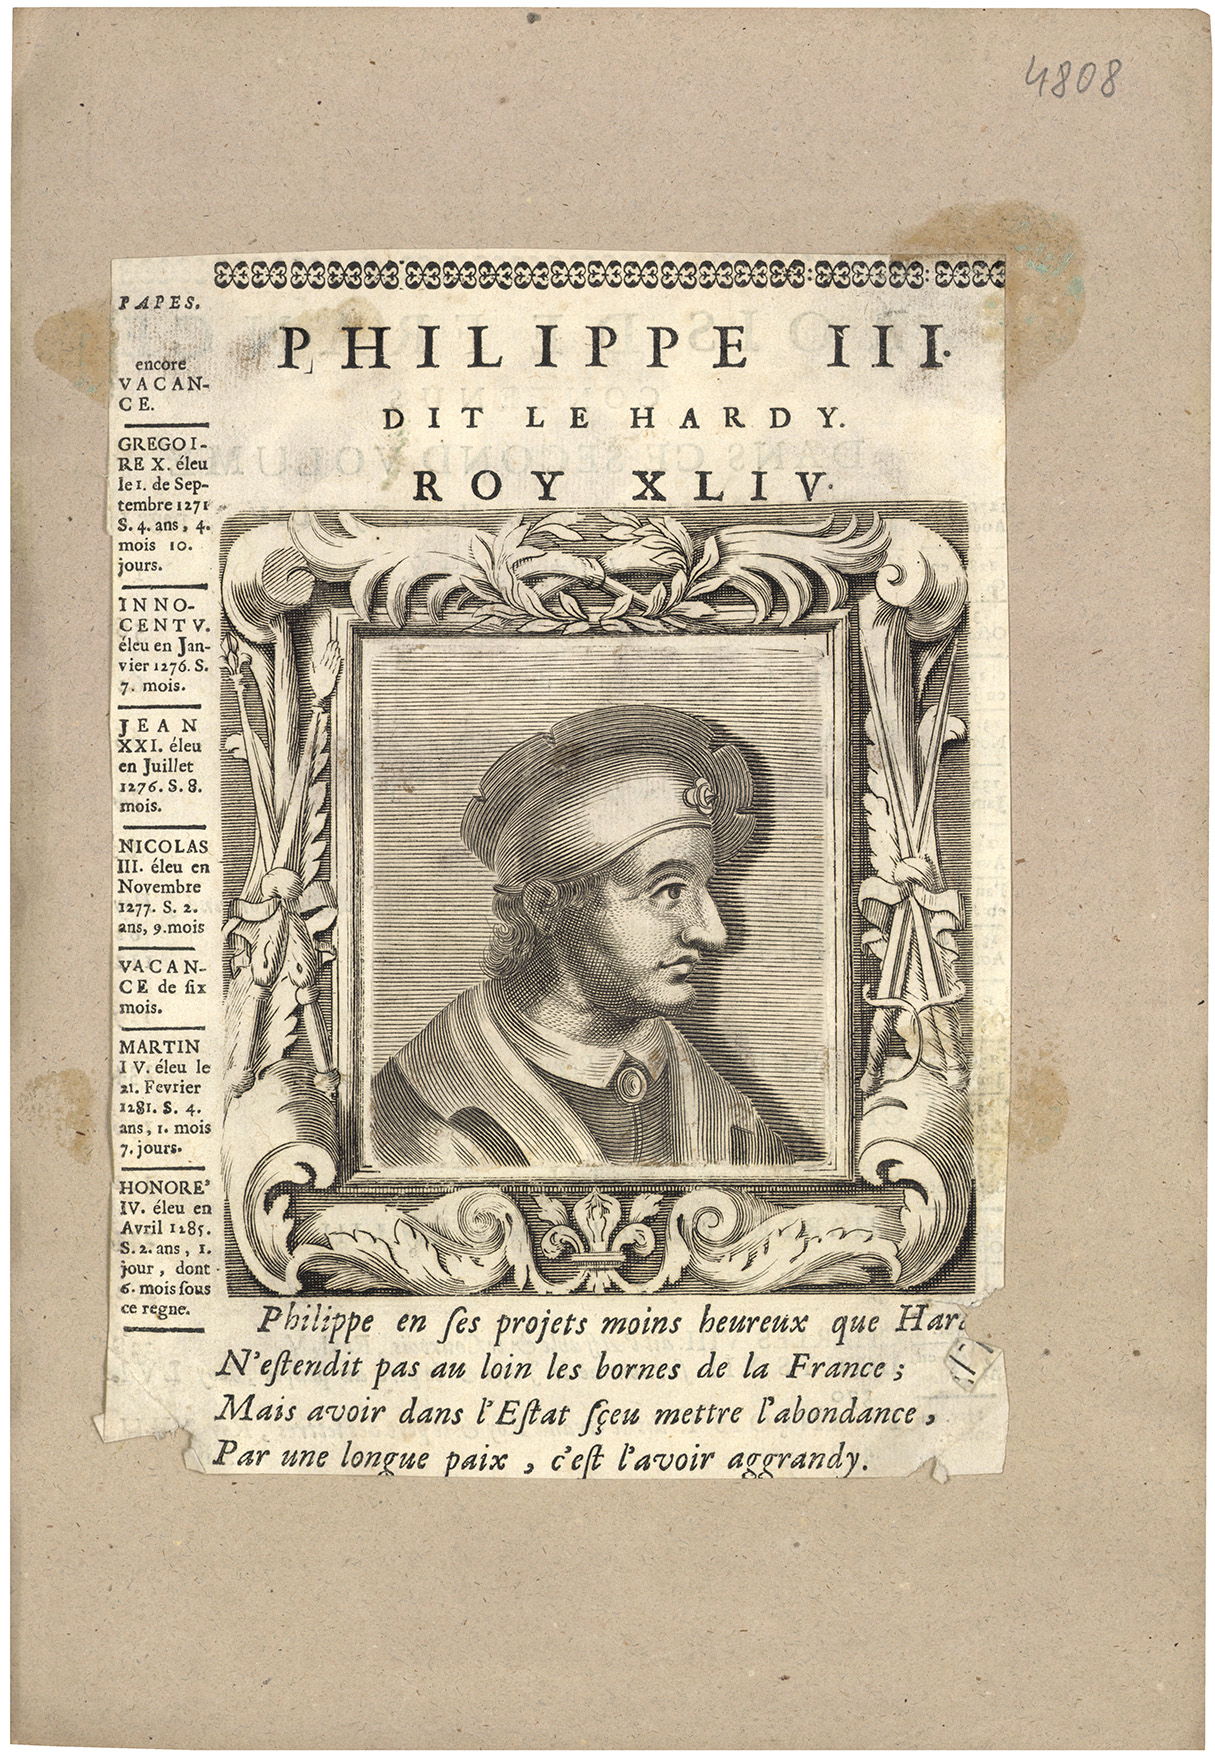 Philippe III., dit Le Hardy, roy XLIV.